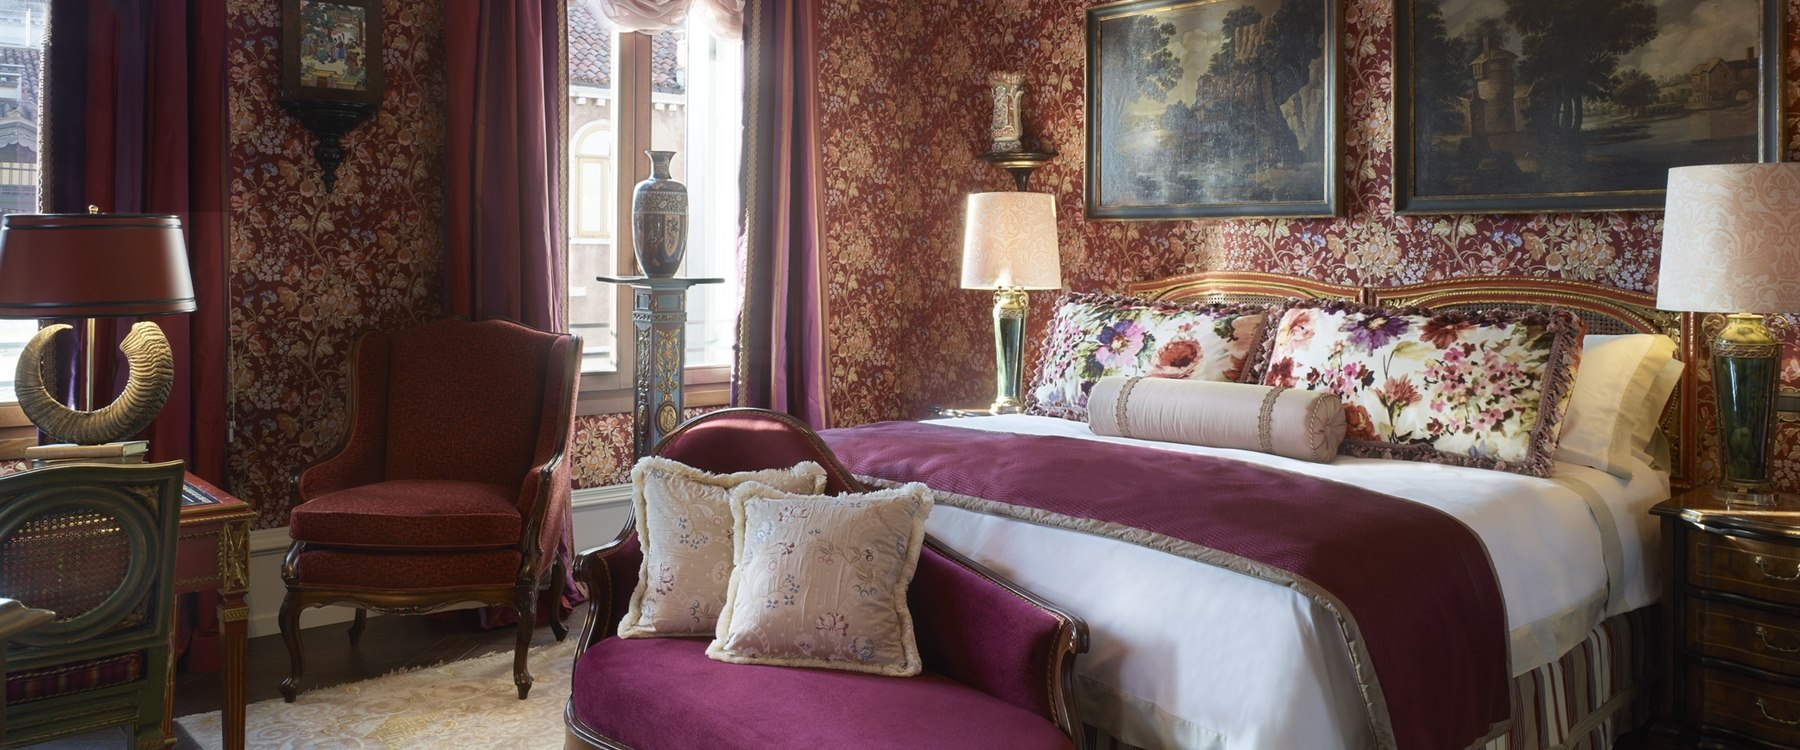 the ruskin patron grand canal suite at Gritti Palace, Venice